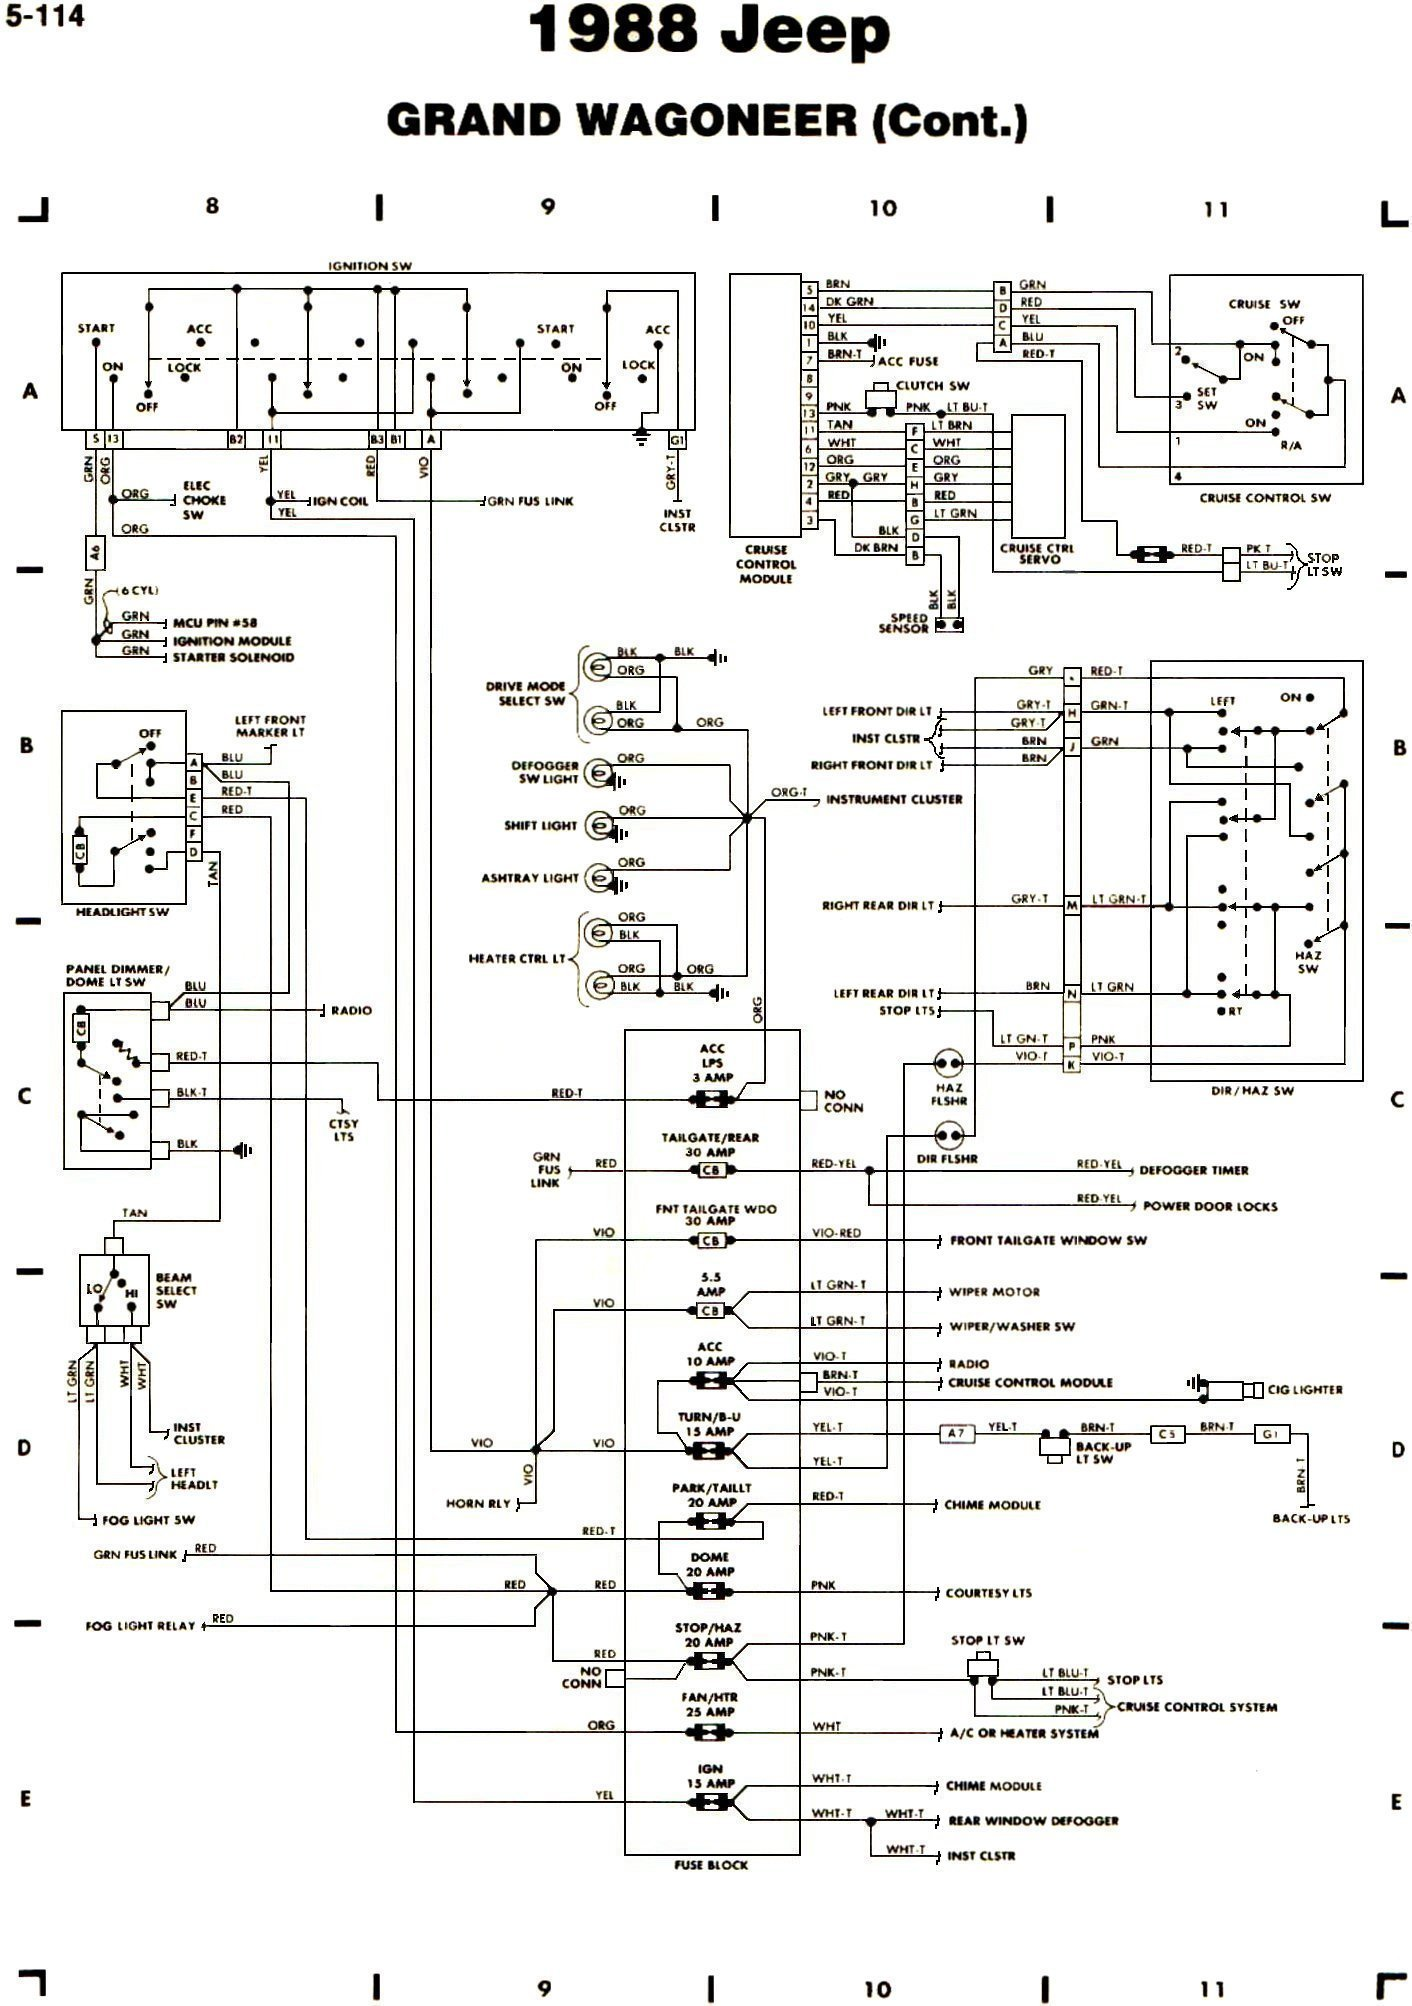 1997 Freightliner Fuse Box Electrical Drawing Wiring Diagram \u2022  Freightliner Columbia Fuse Box Freightliner Fld120 Fuse Box Location